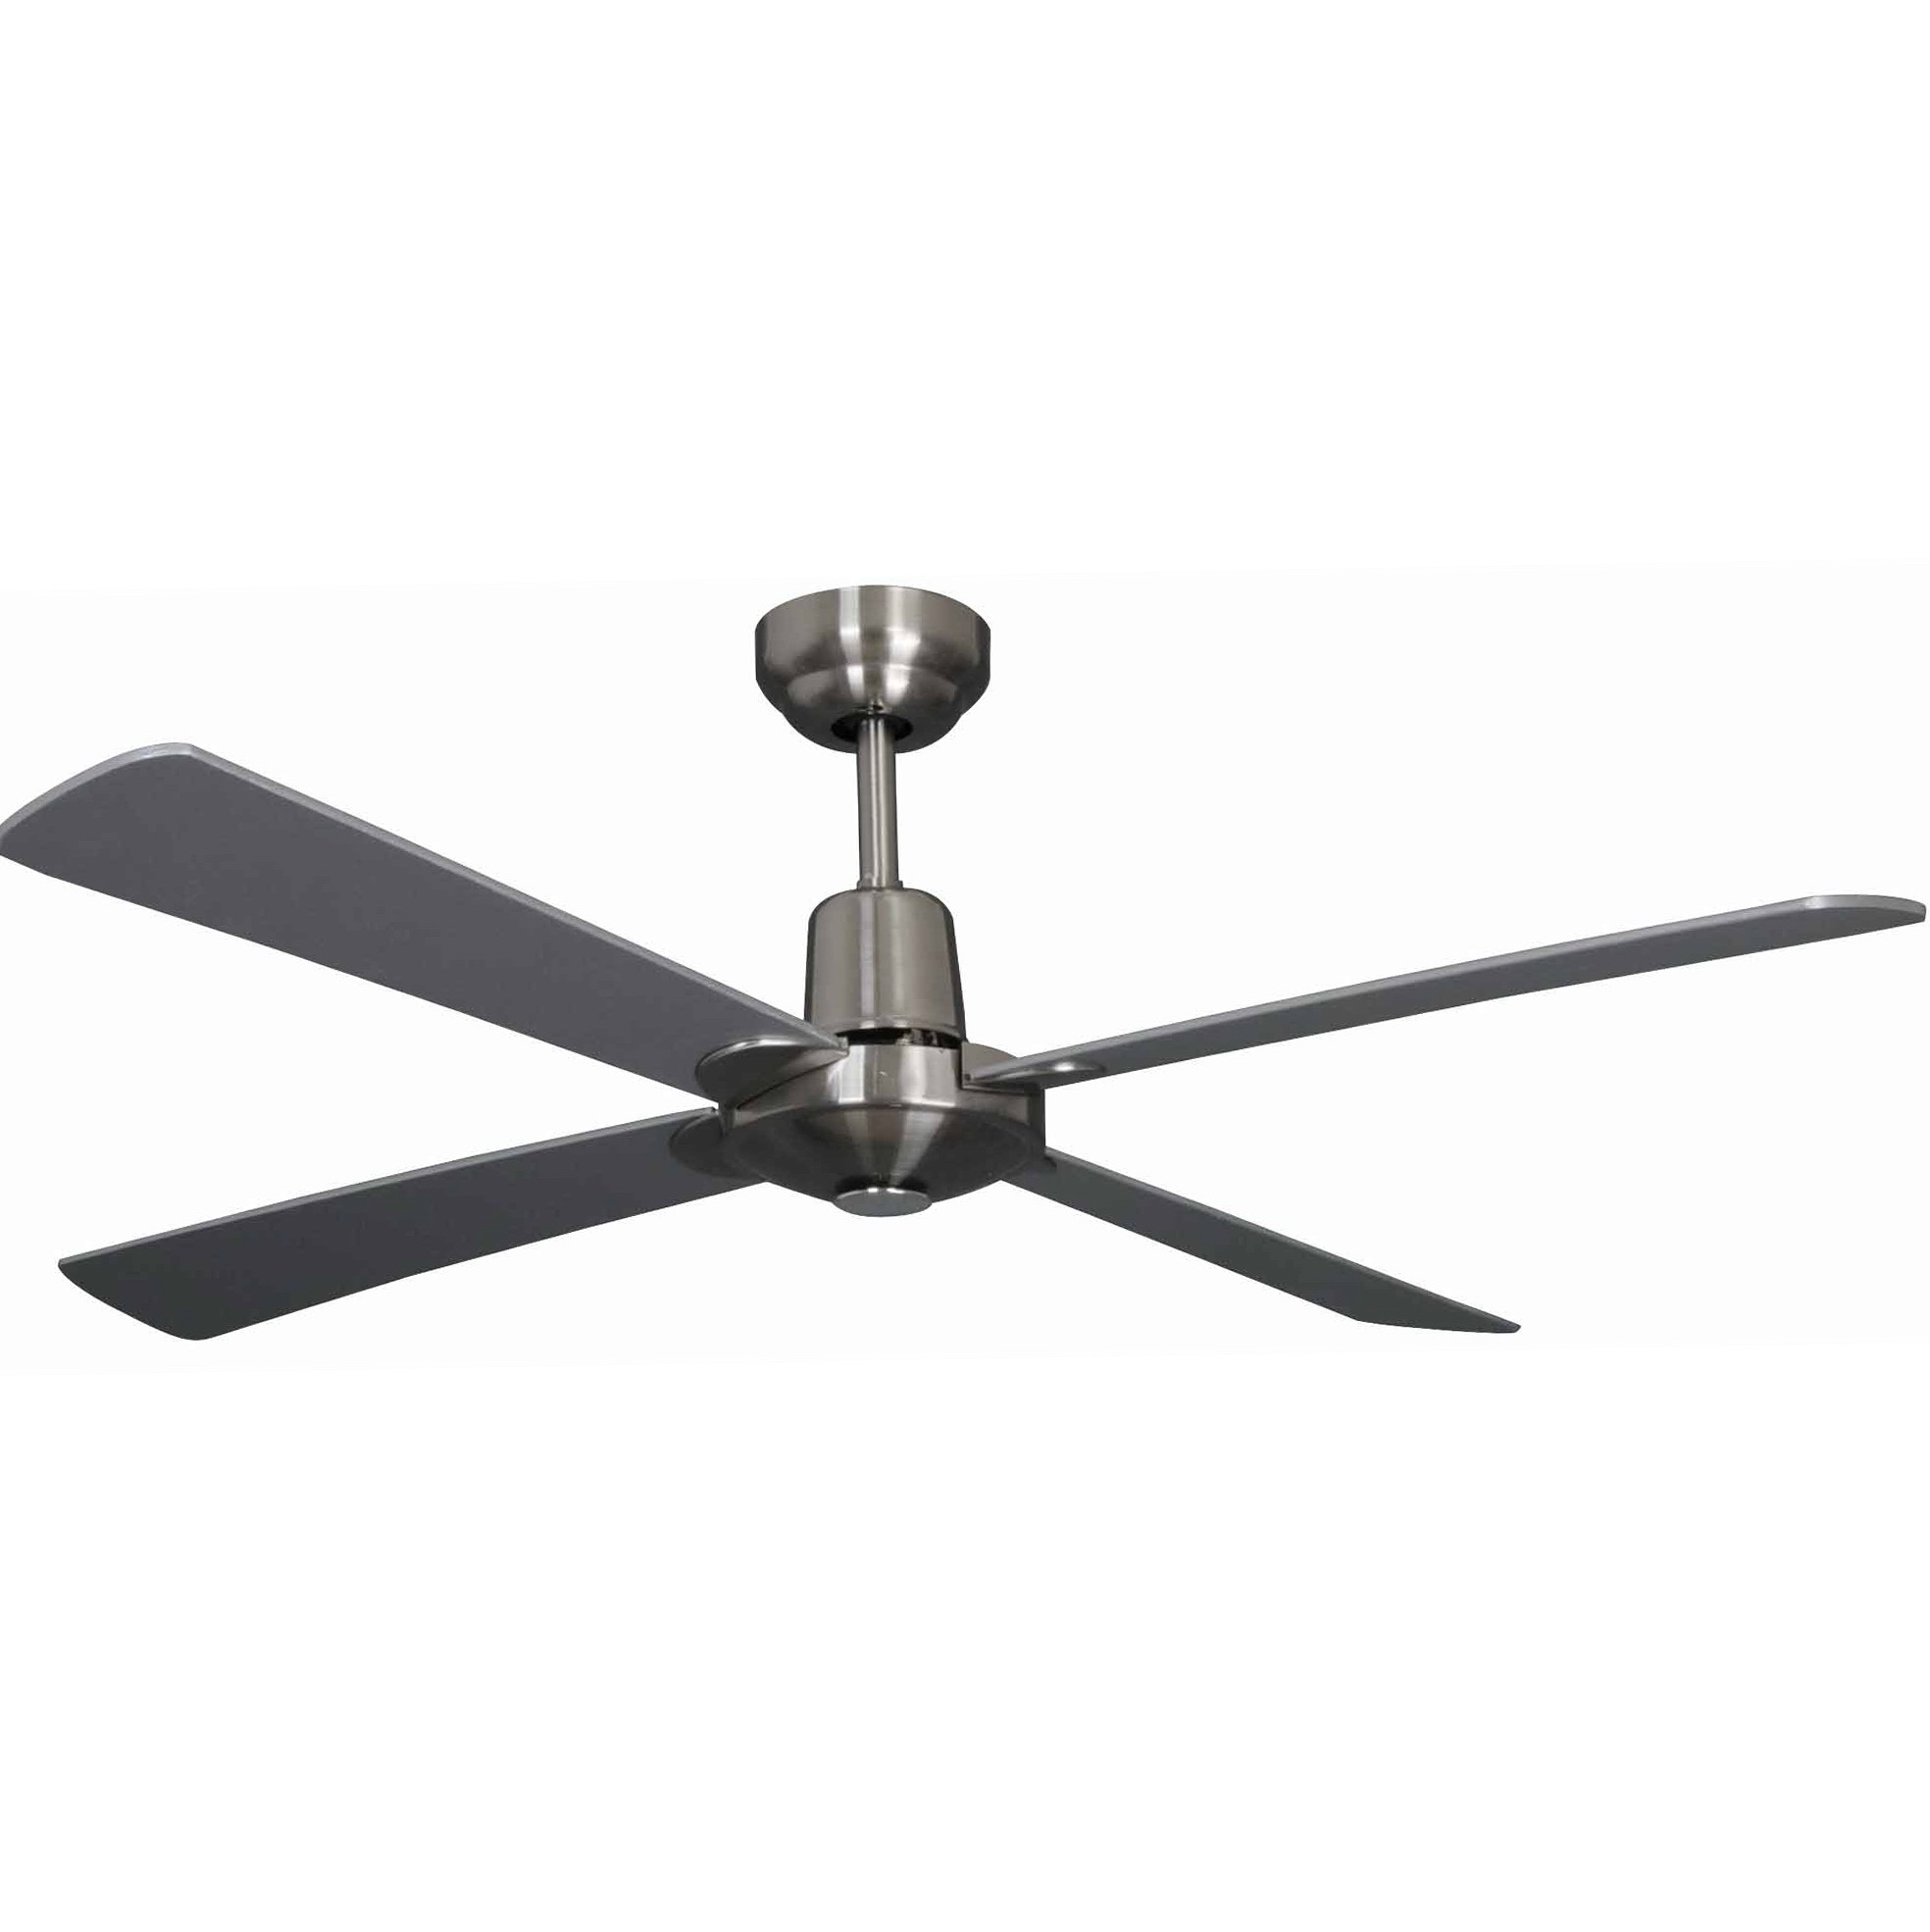 Inspiration about Interior: Sophisticated Ceiling Fans Menards For Indoor Of Outdoor Within Hunter Outdoor Ceiling Fans With Lights And Remote (#8 of 15)